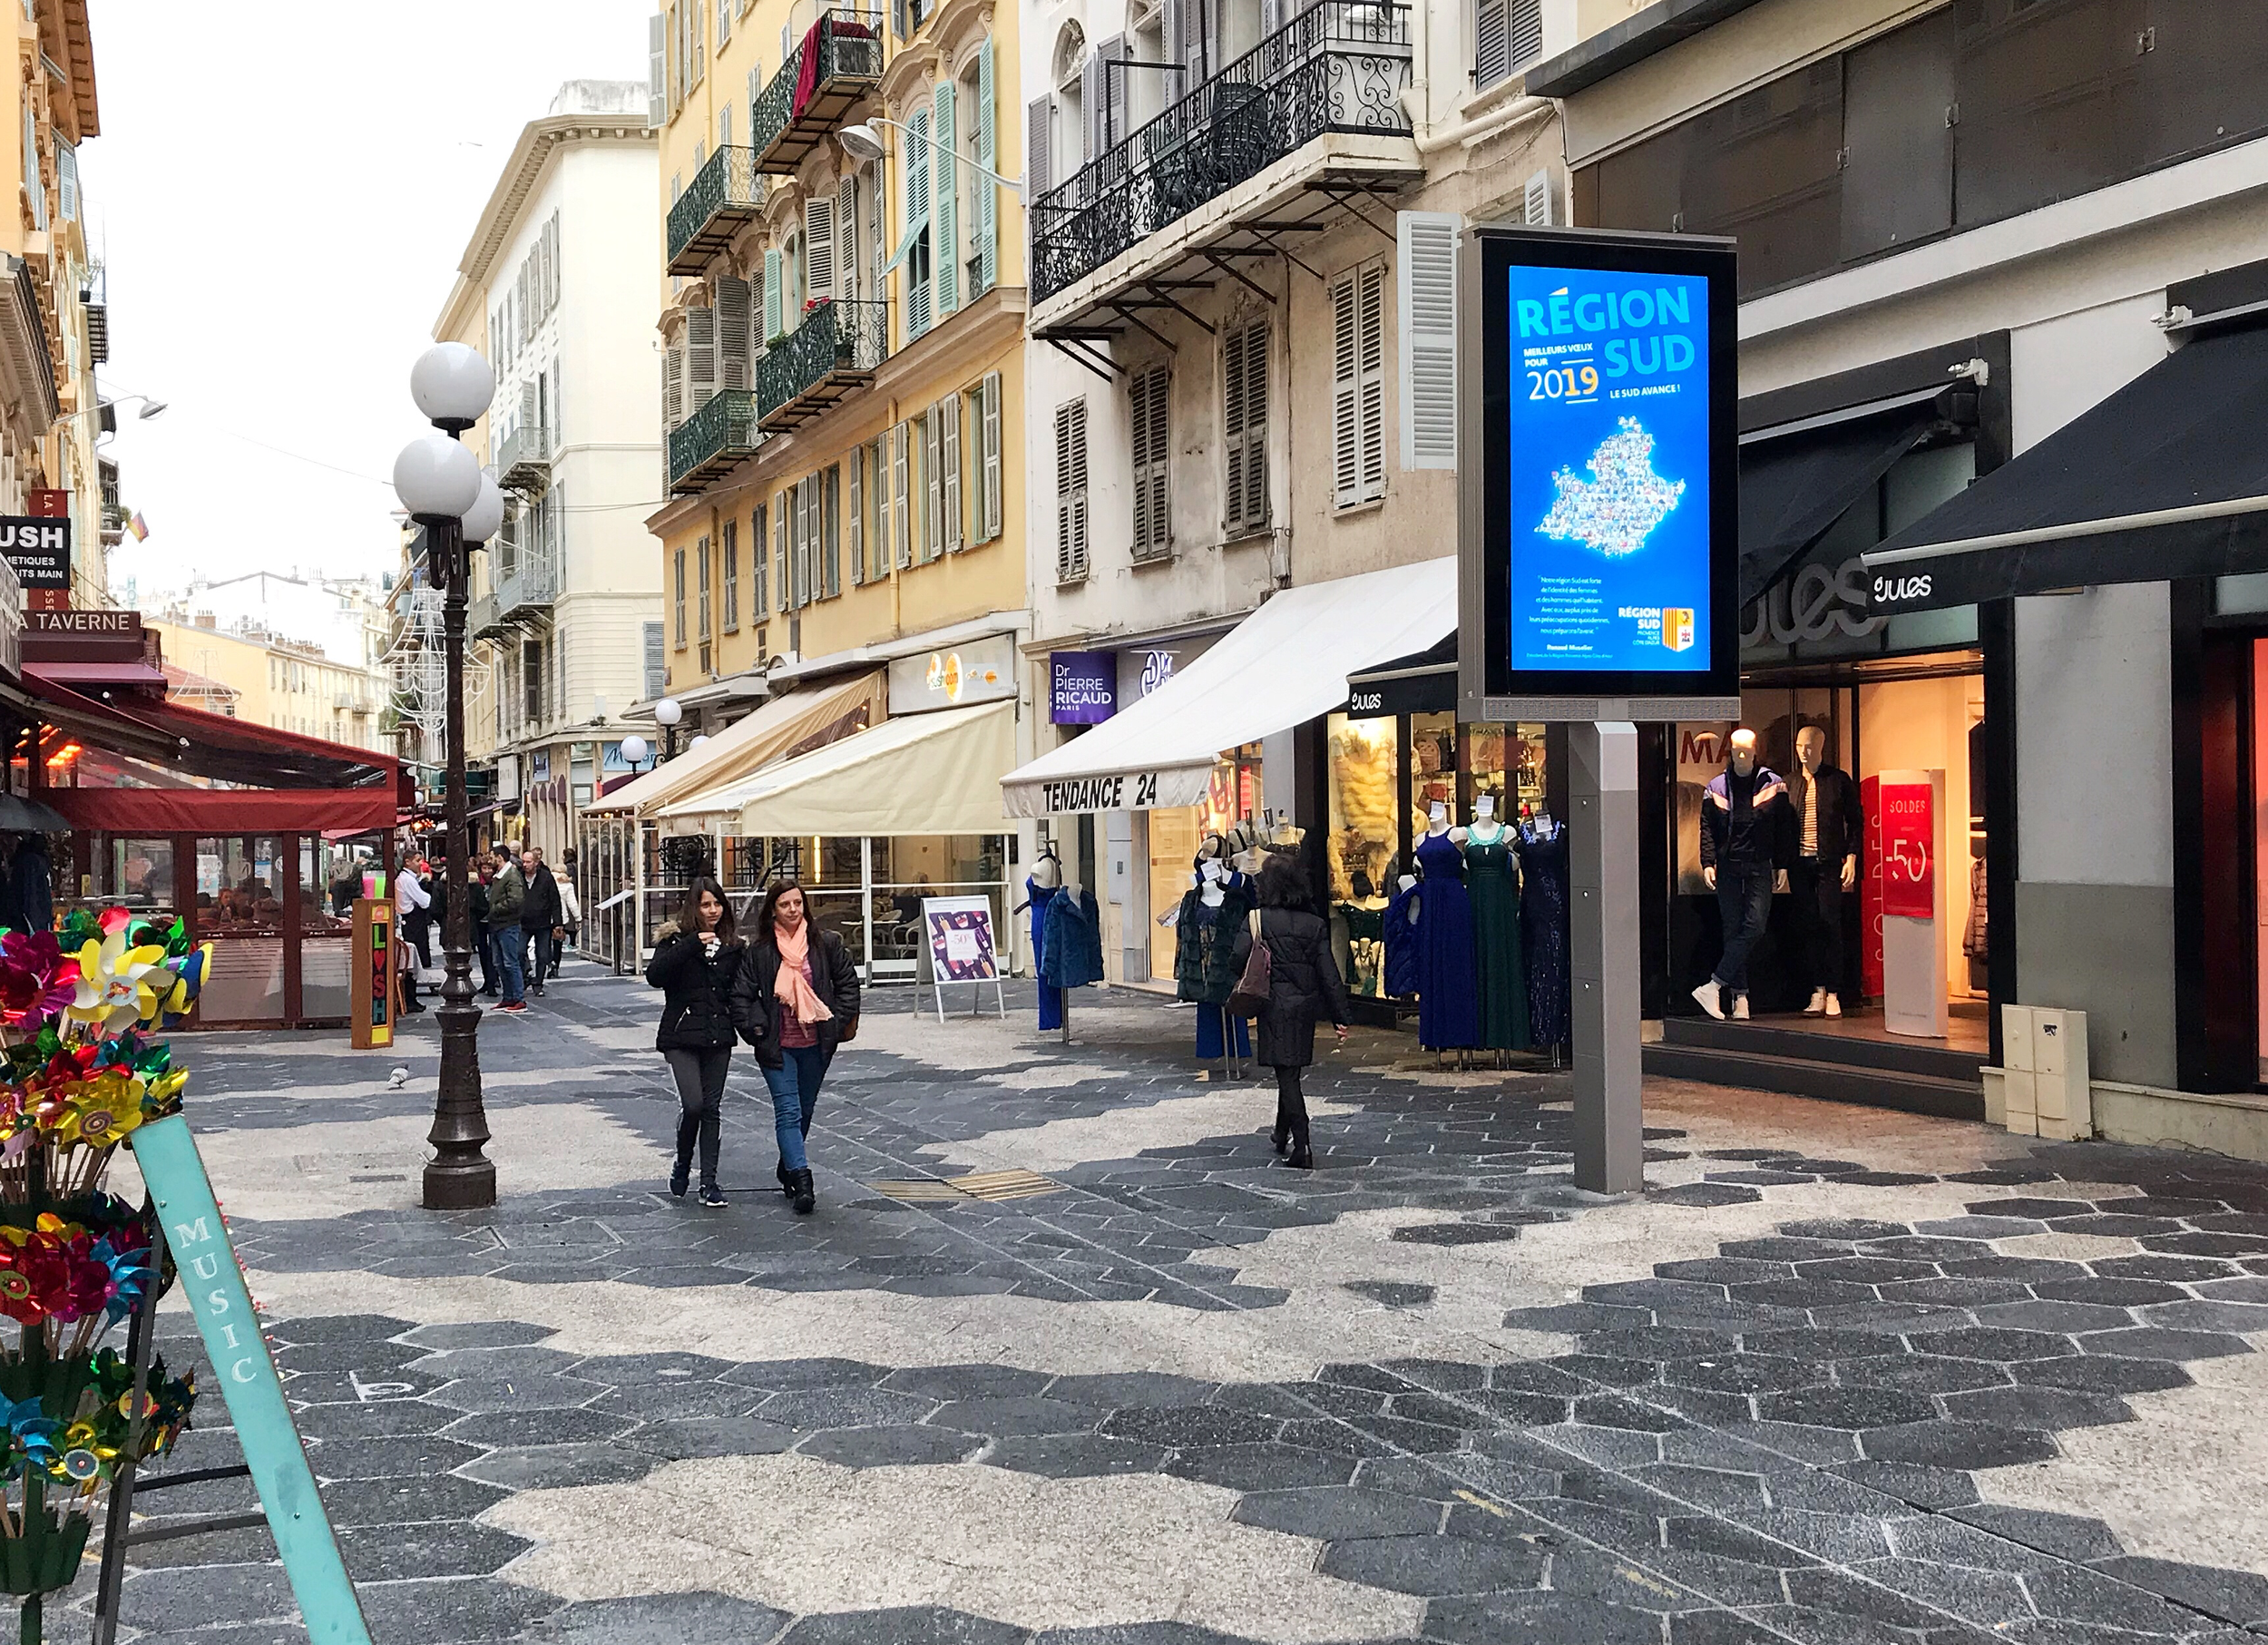 Digital signs are a central component of the smart city strategy in Nice, France.